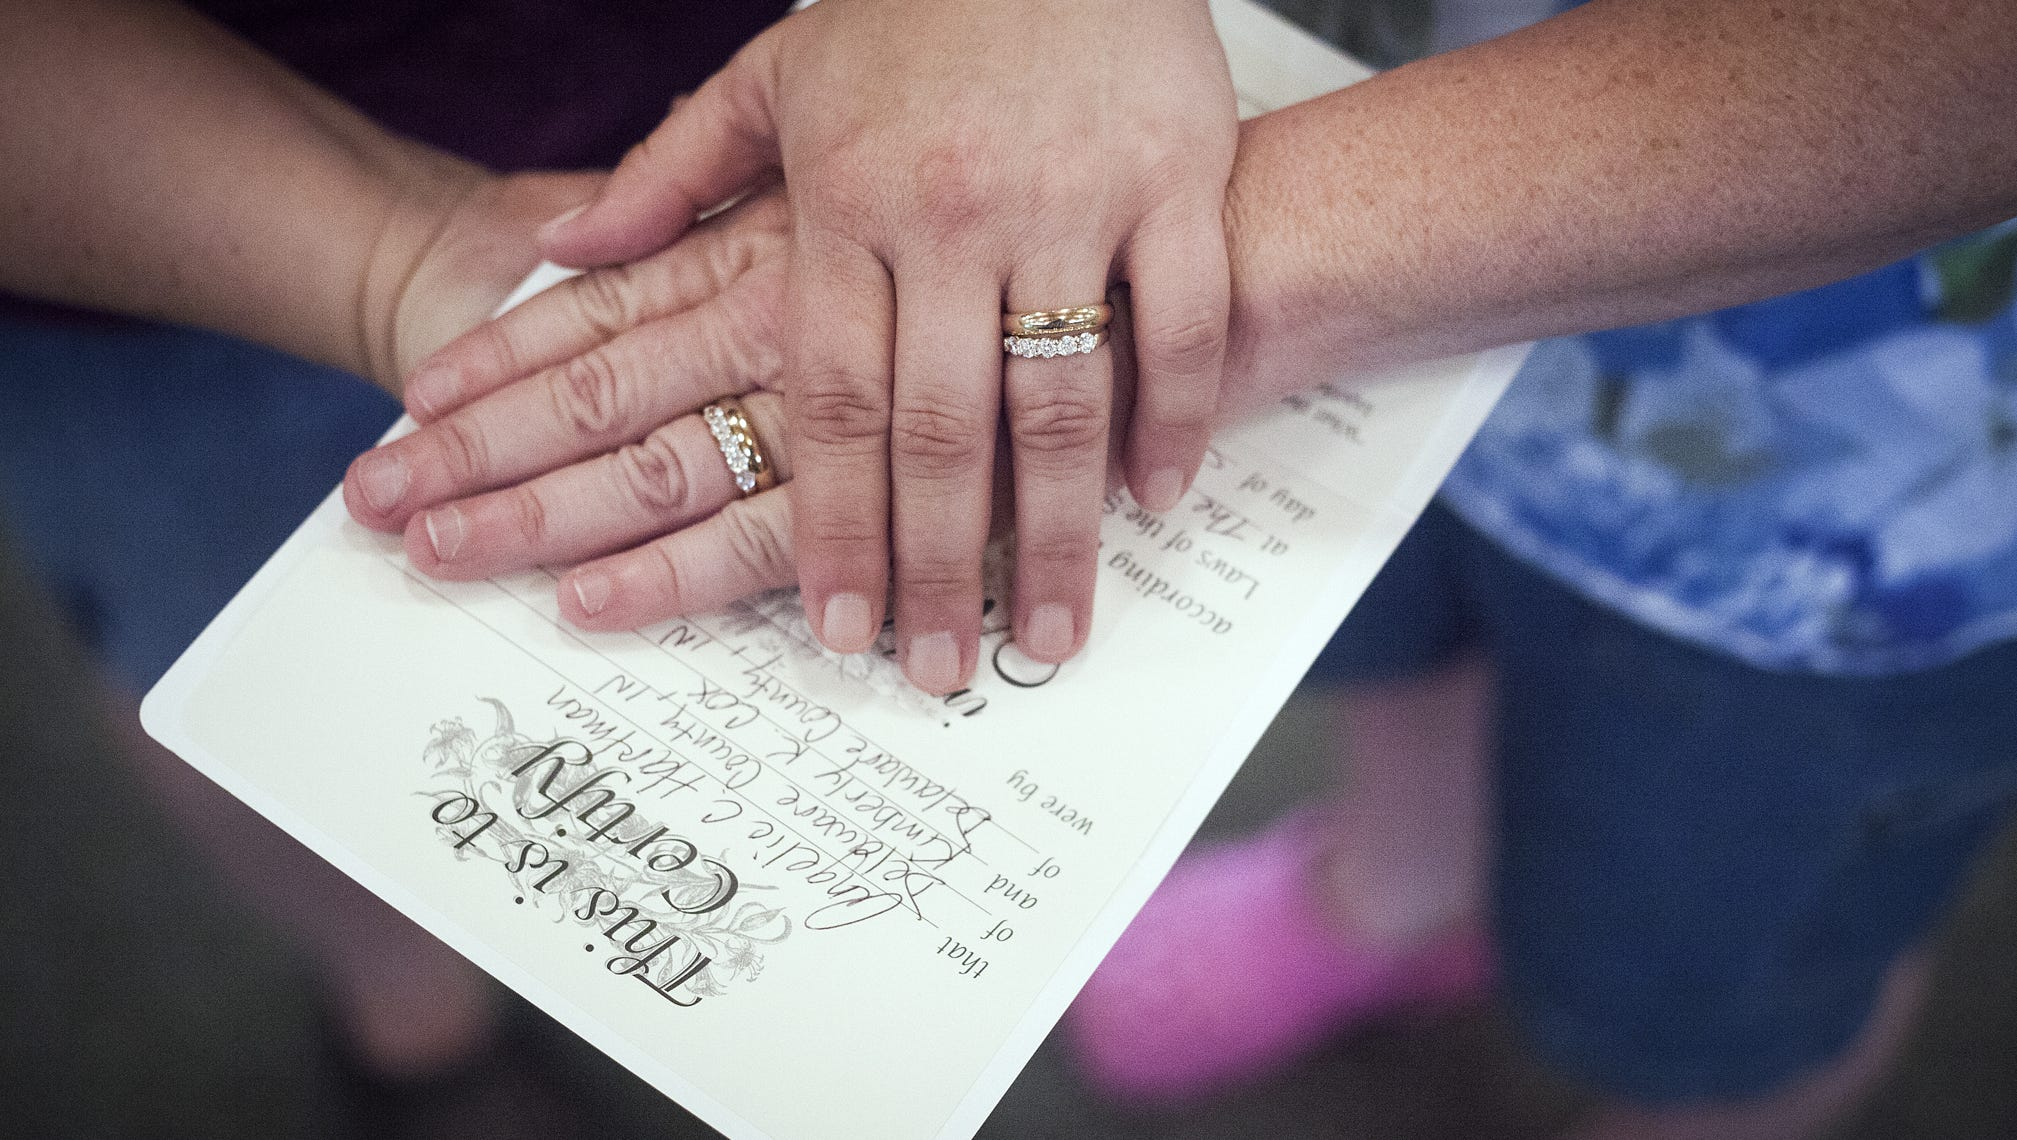 Clerk sees marriage license boom during COVID pandemic